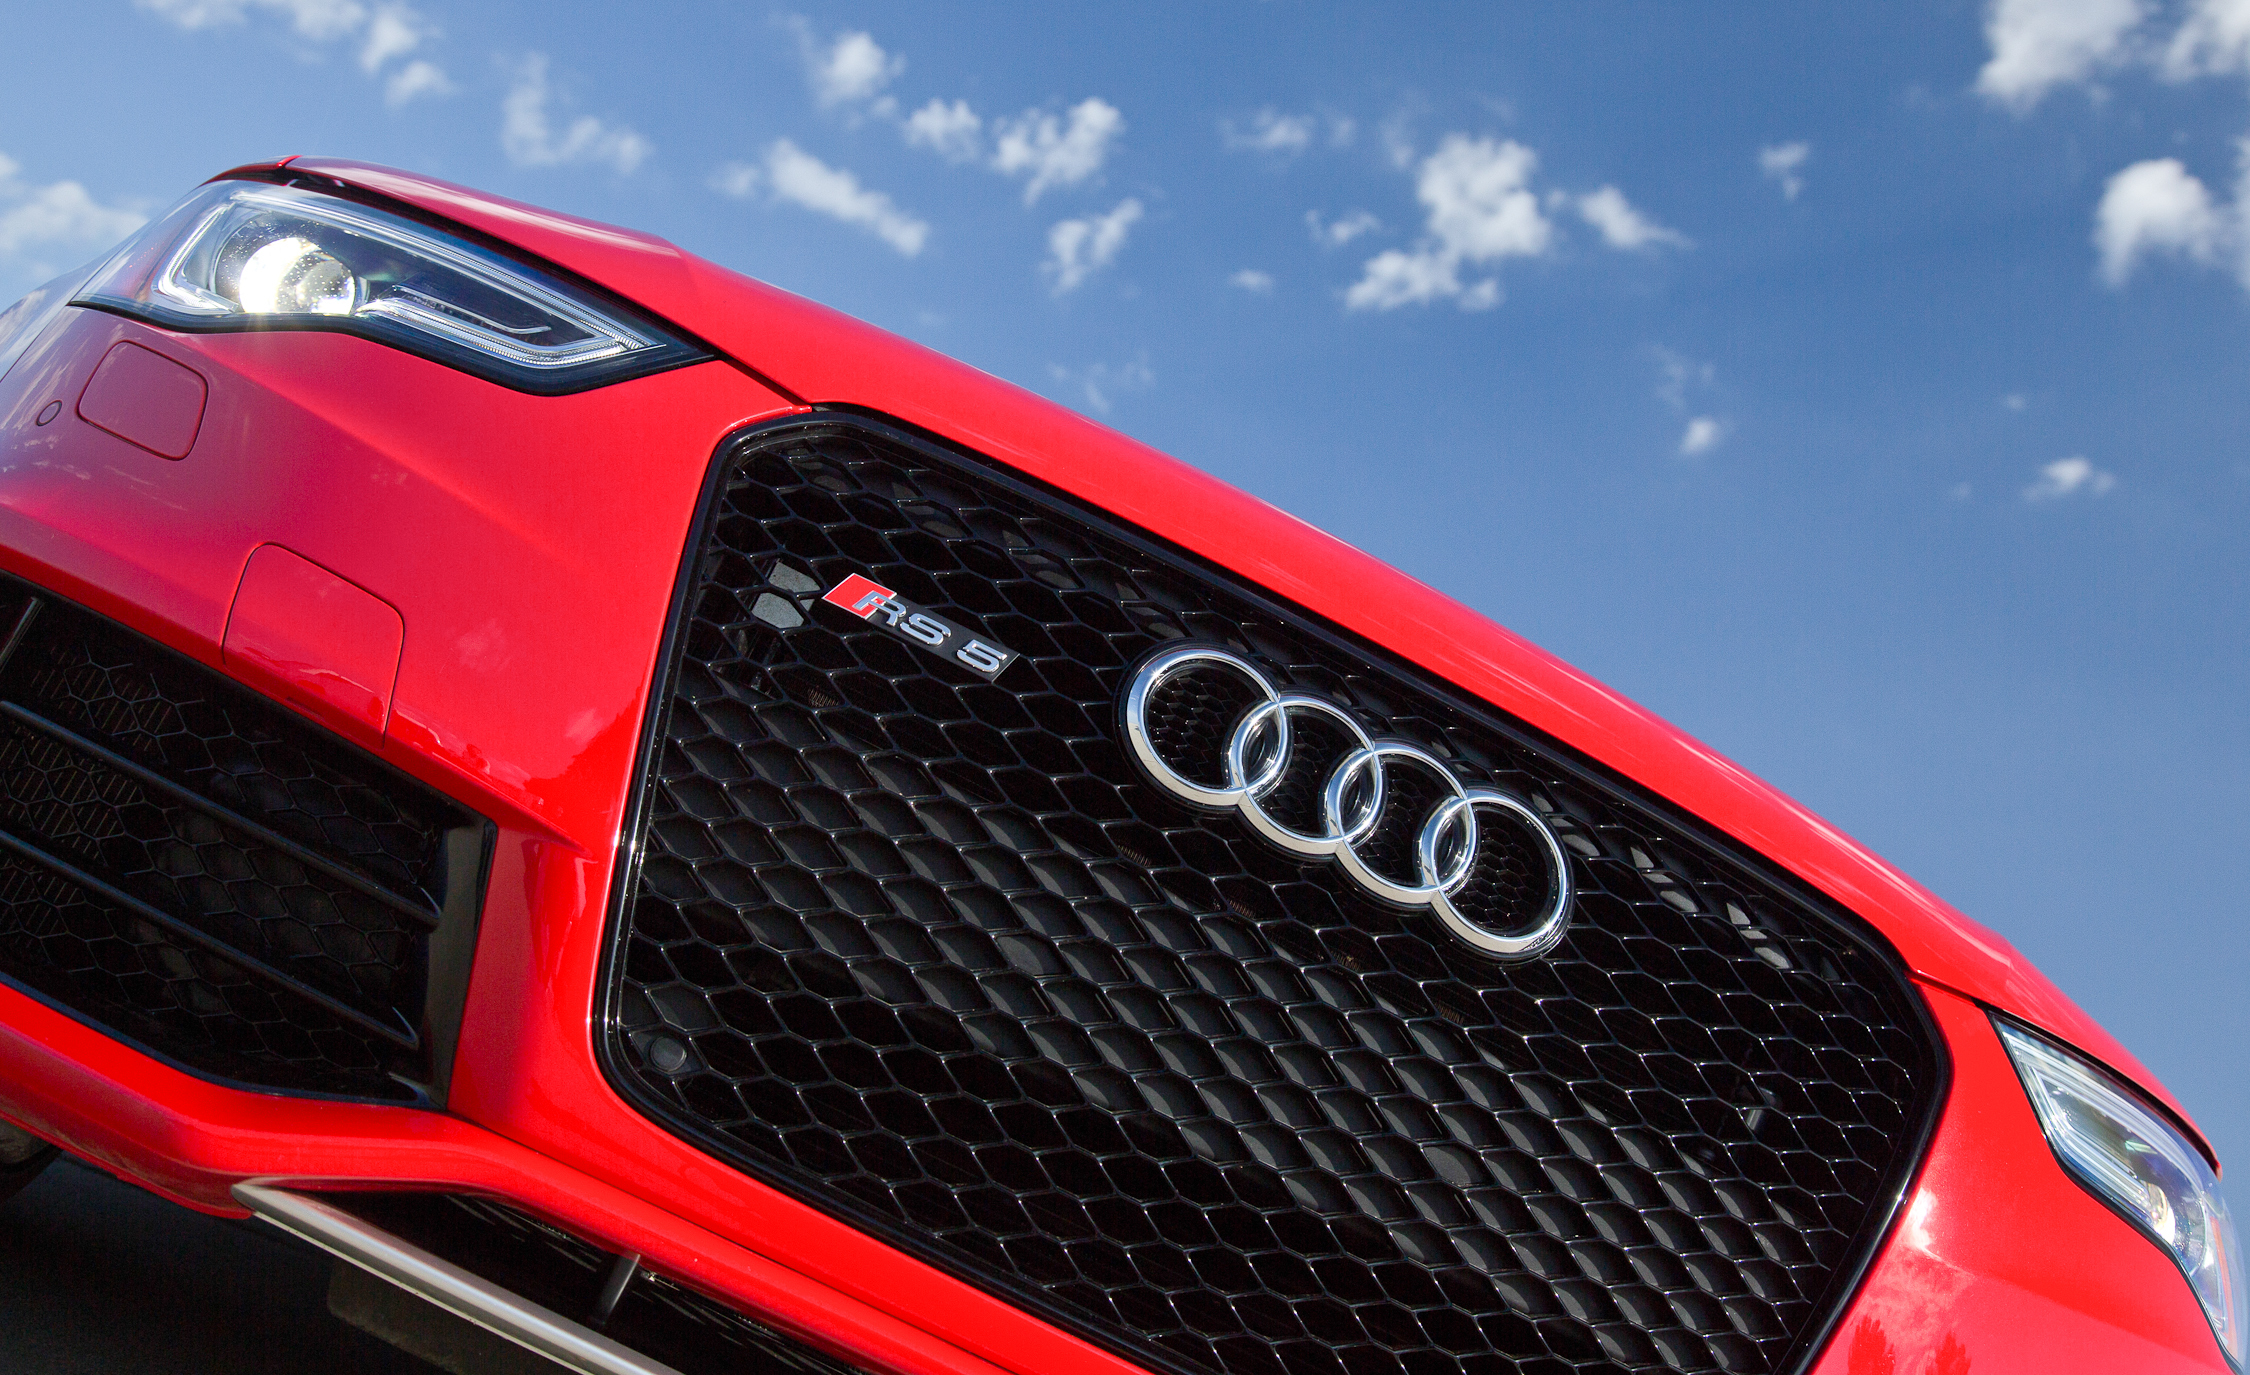 2013 Audi RS 5 Exterior View Grille (View 16 of 41)